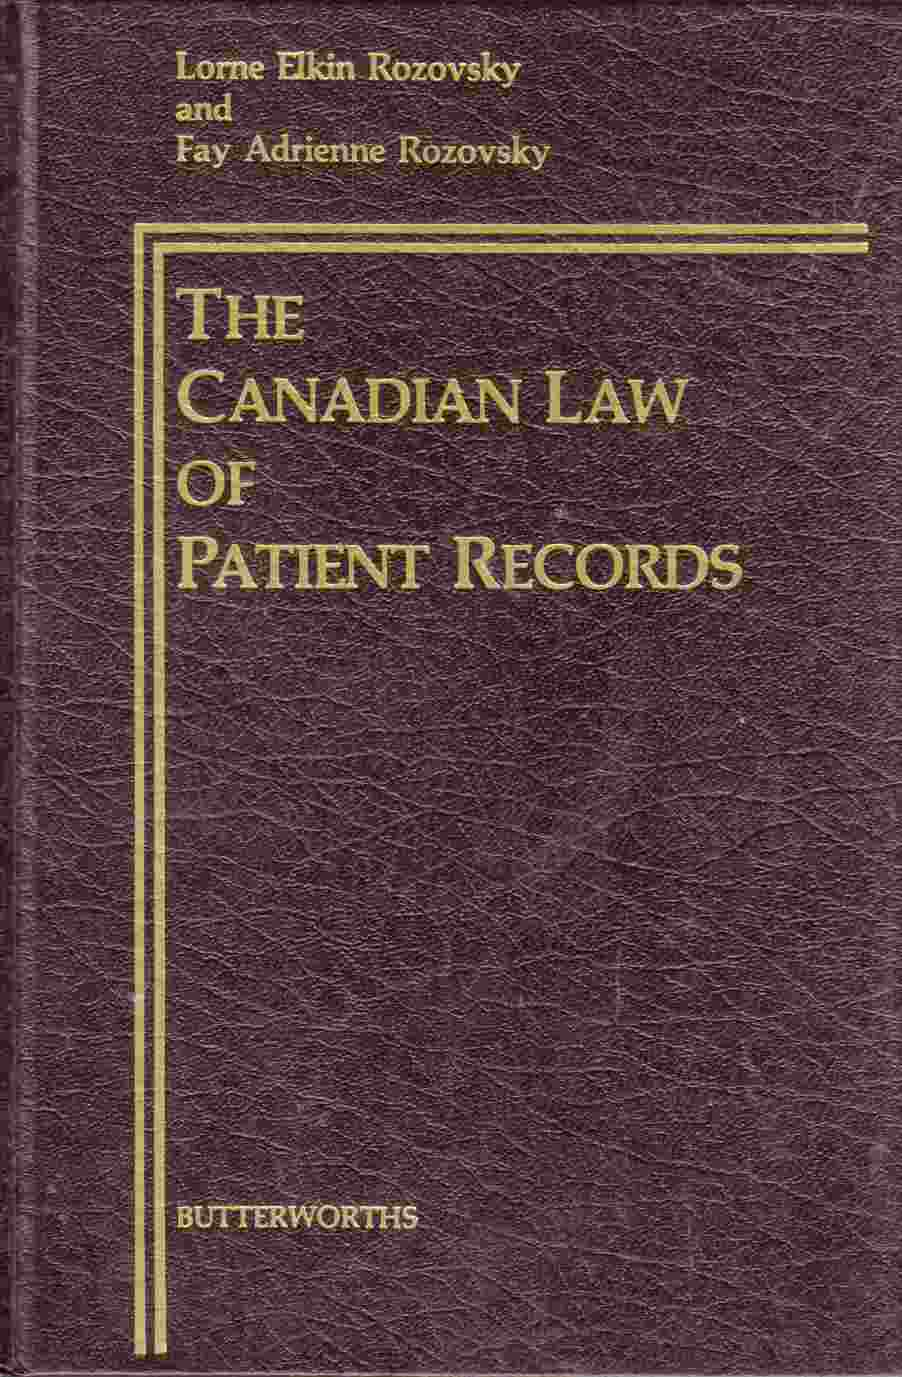 Image for The Canadian Law of Patient Records